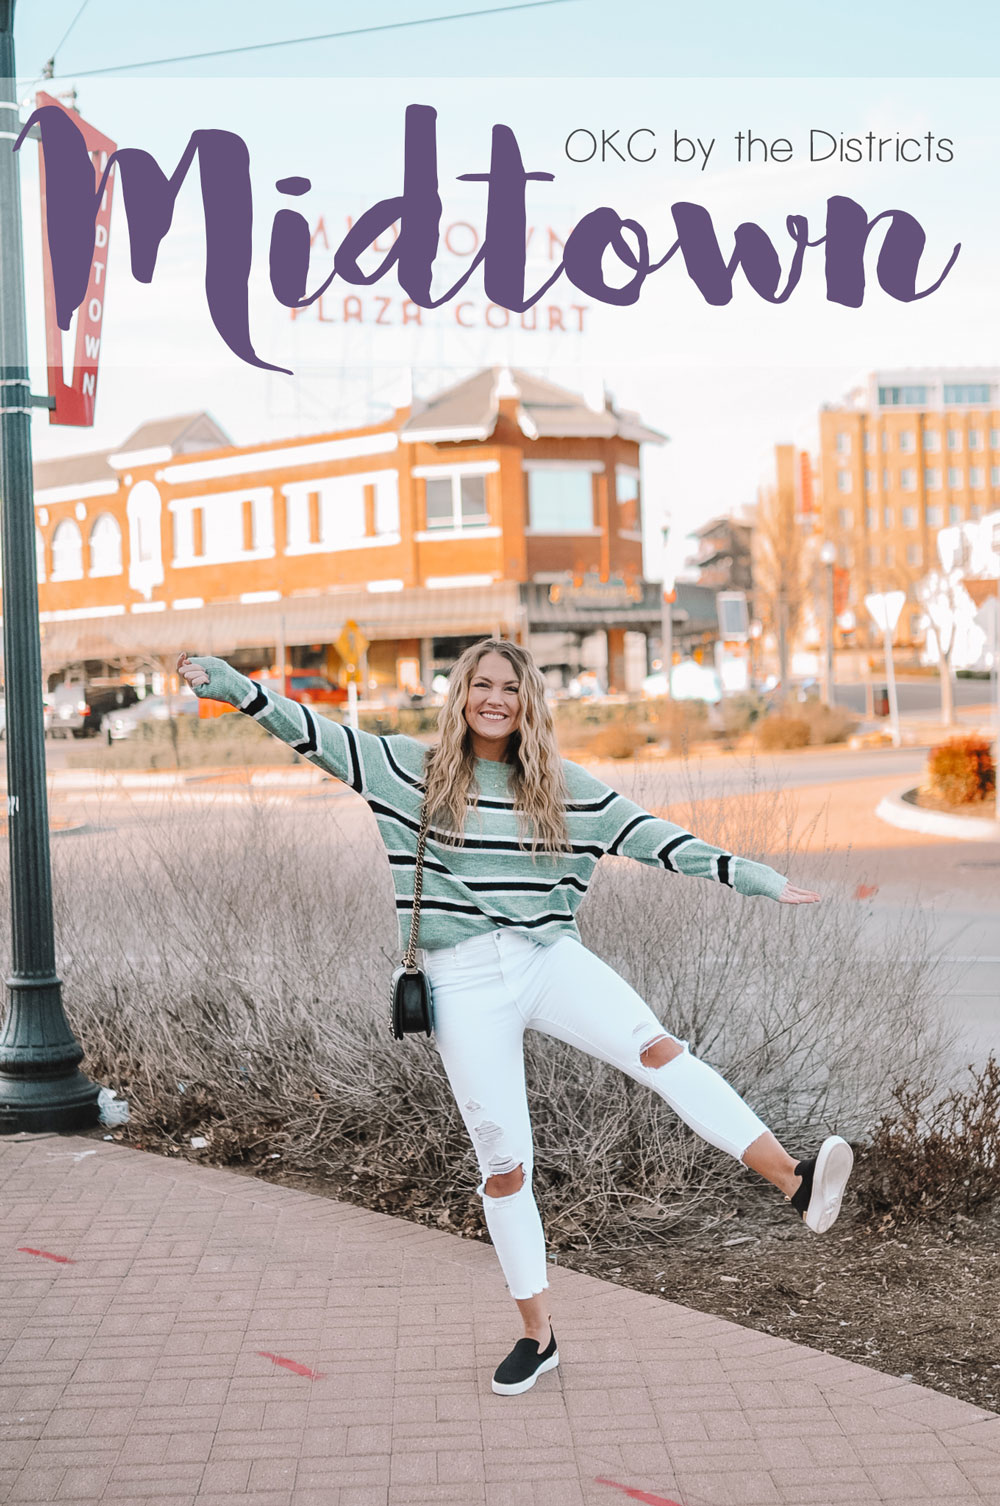 OKC Blogger Amanda's OK shares her favorite spots in Midtown